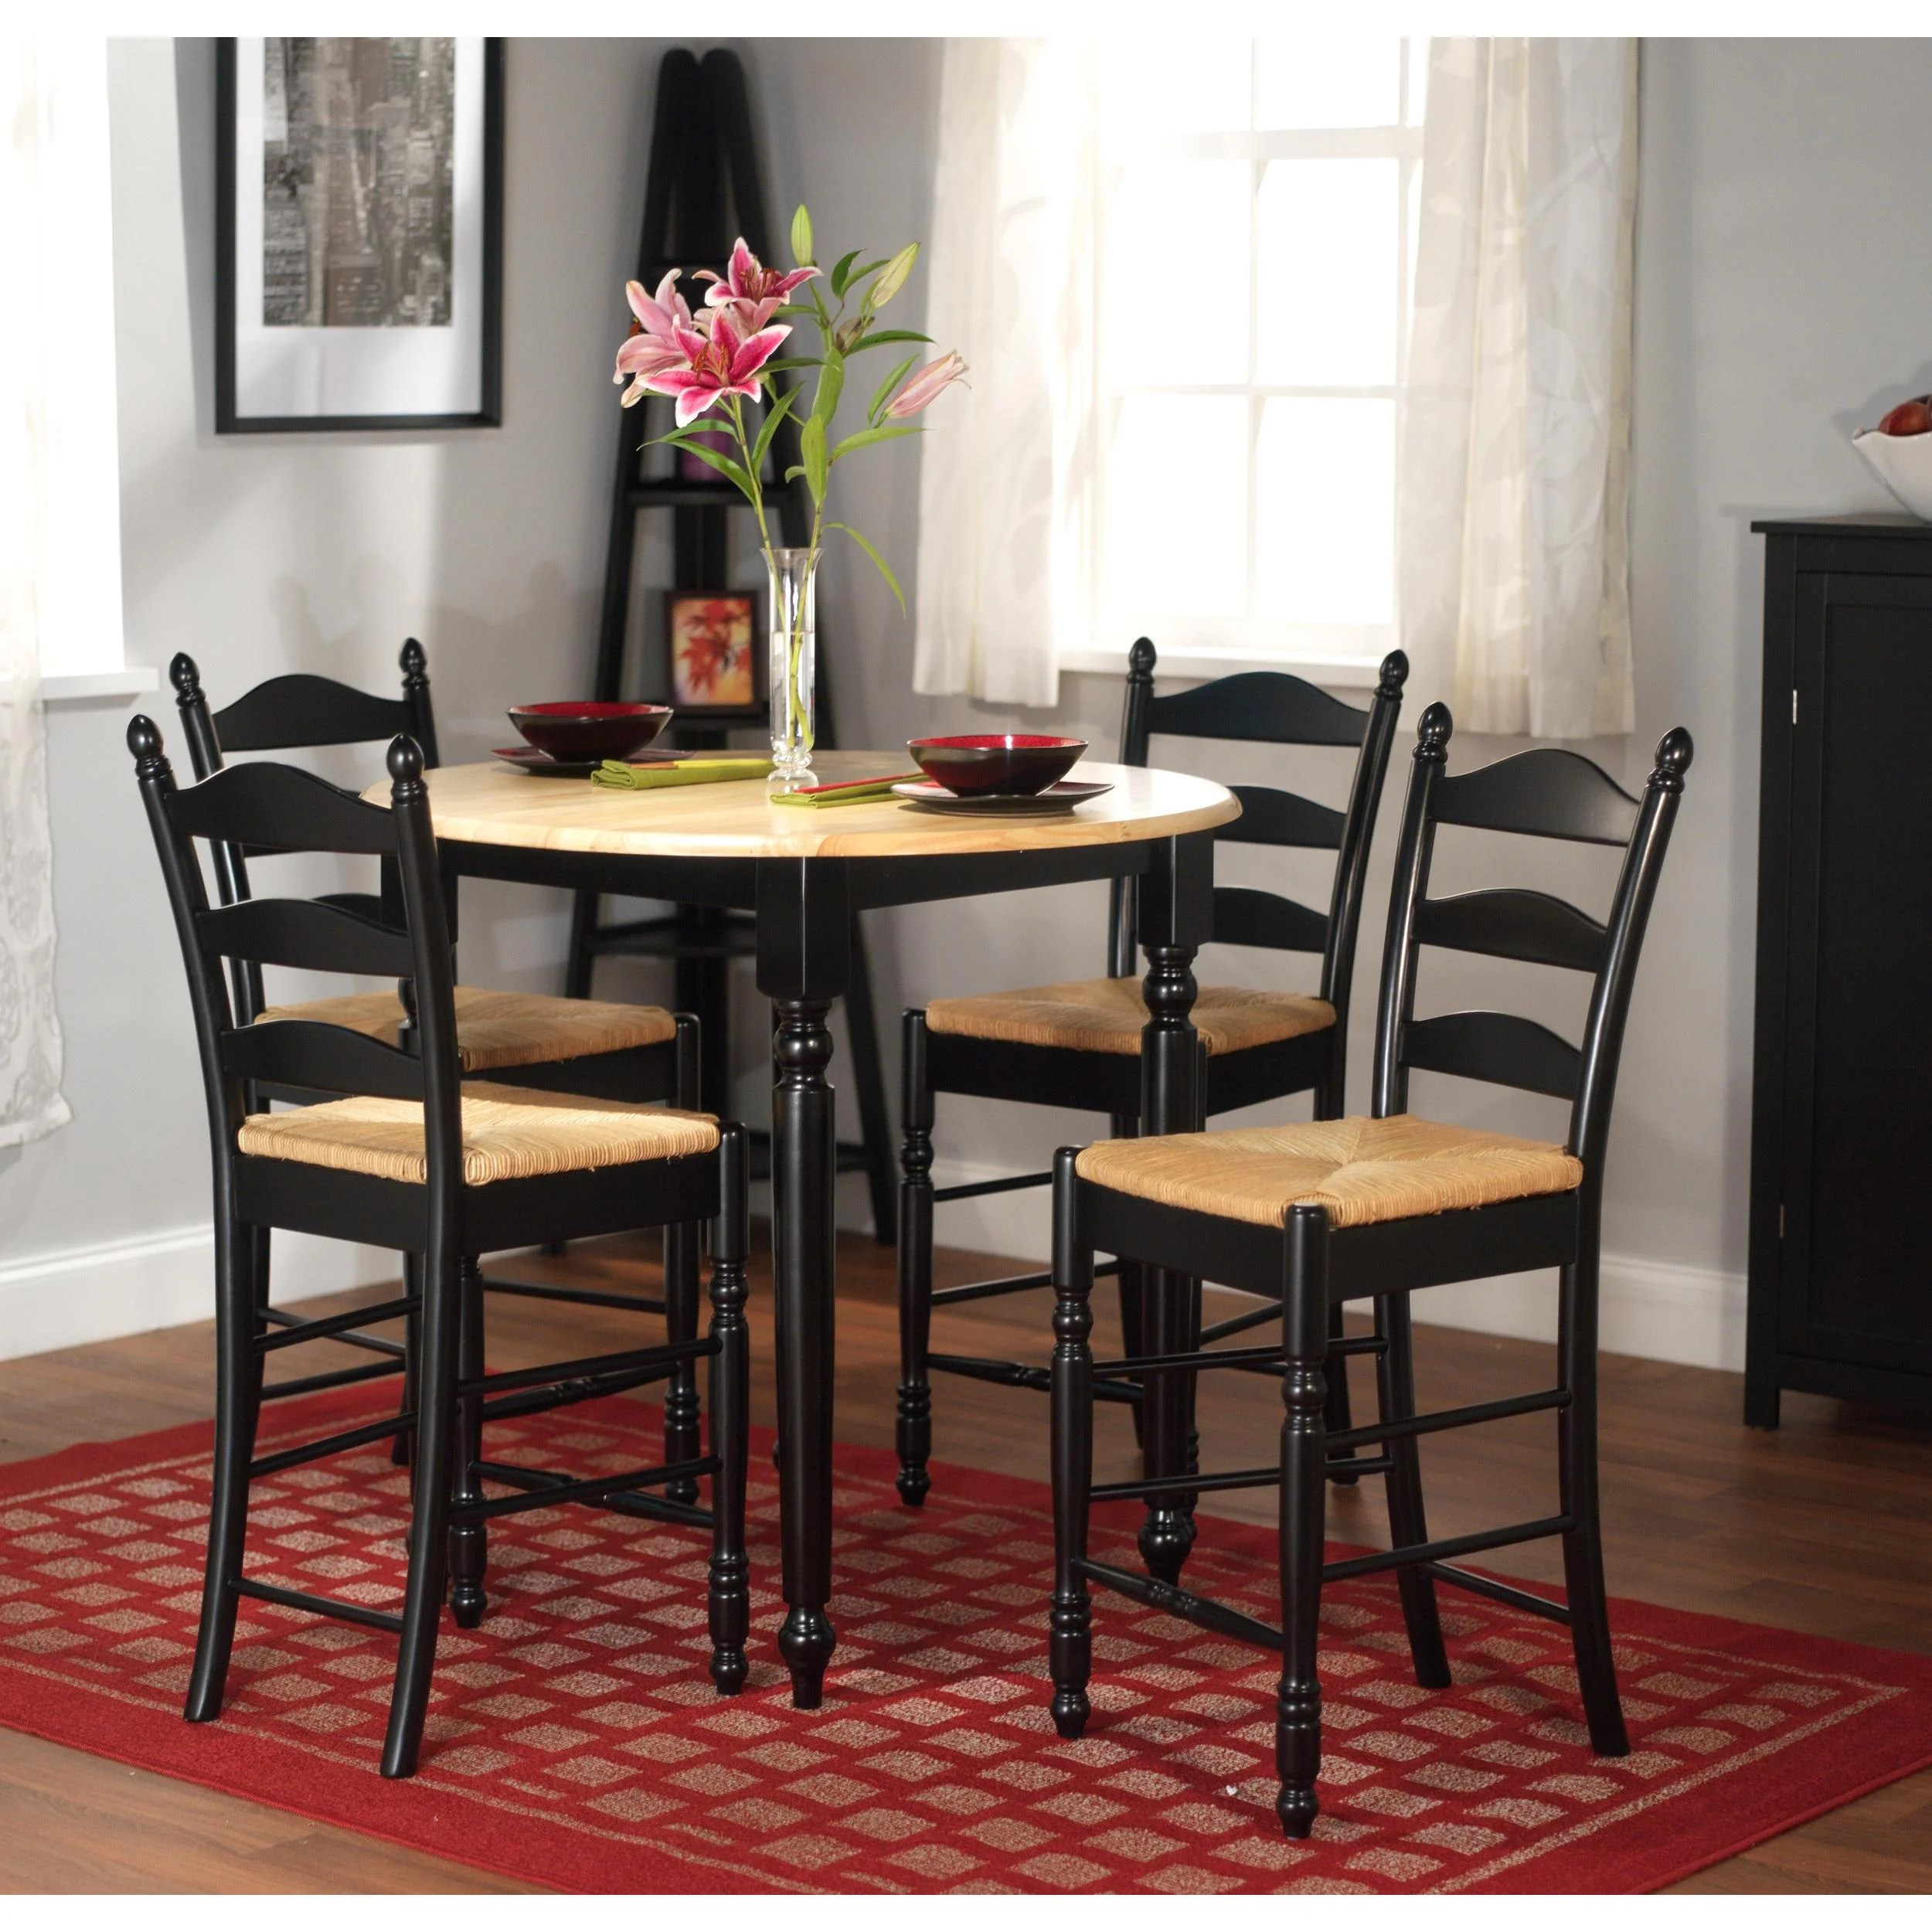 overstock com dining room chairs best zero gravity chair simple living round counter height 5 piece set